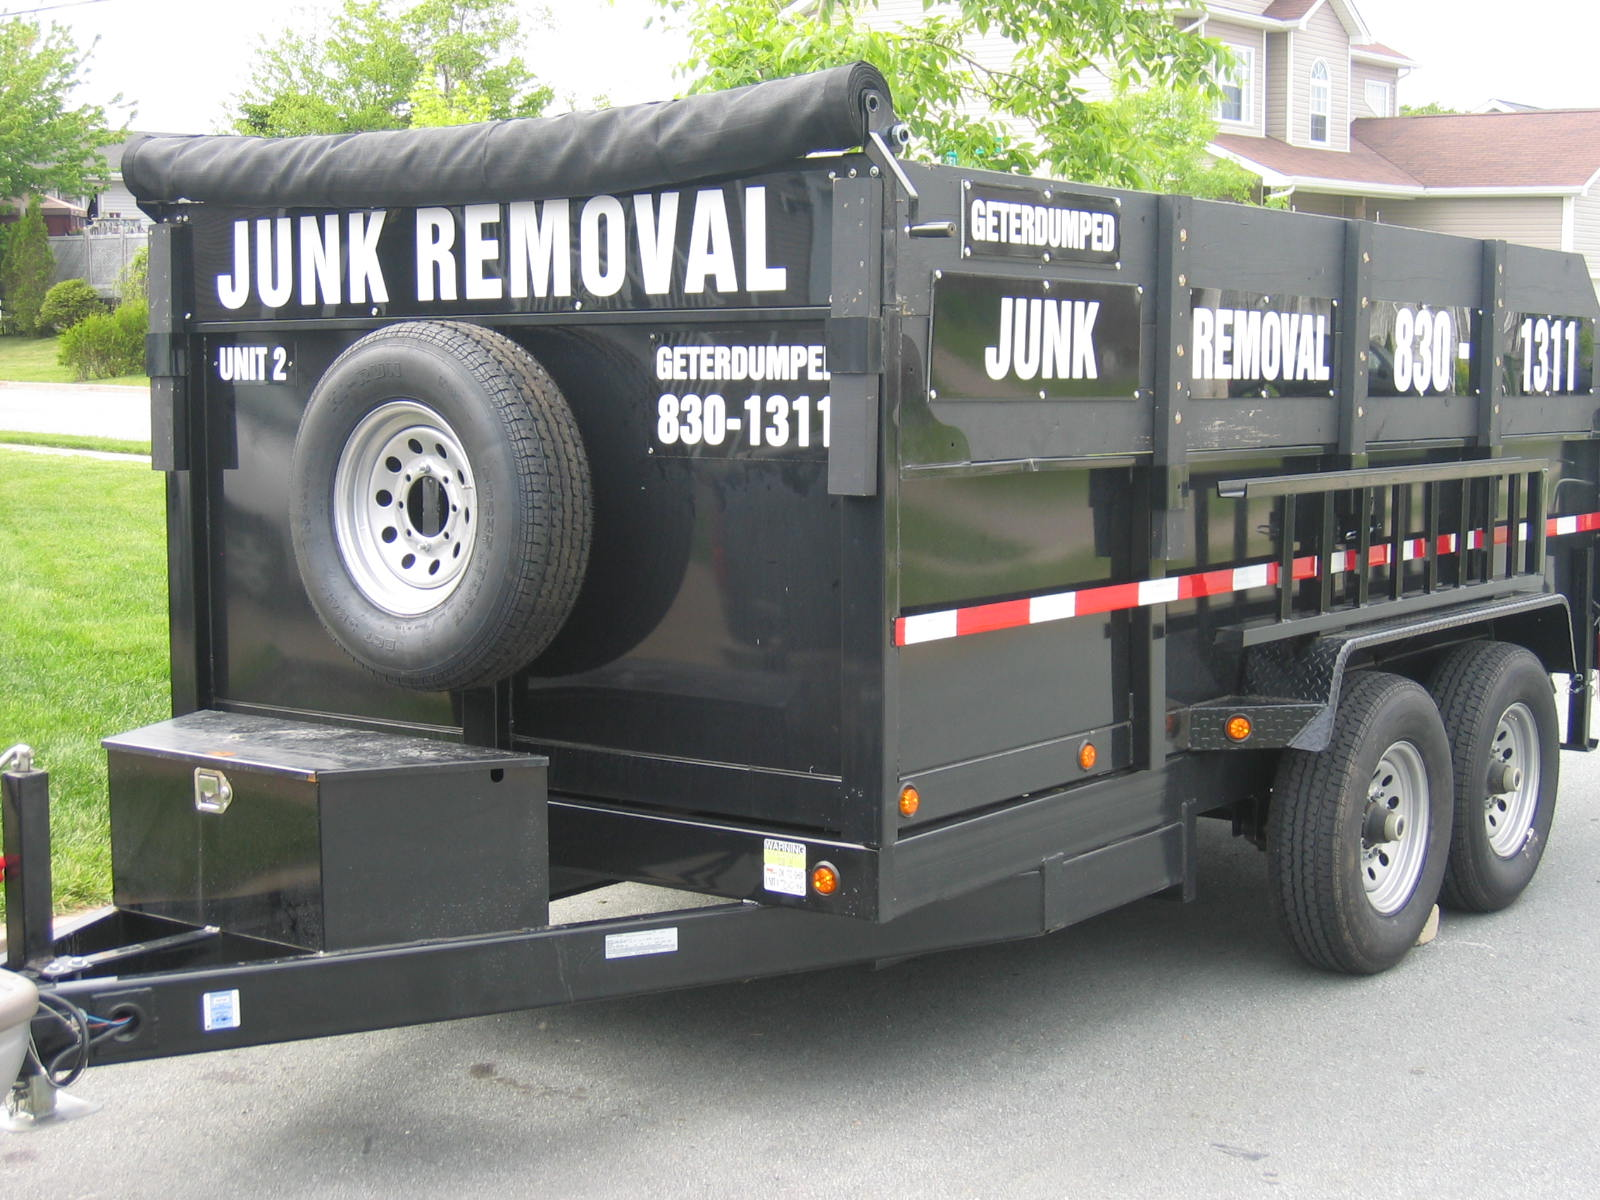 GETERDUMPED JUNK REMOVAL